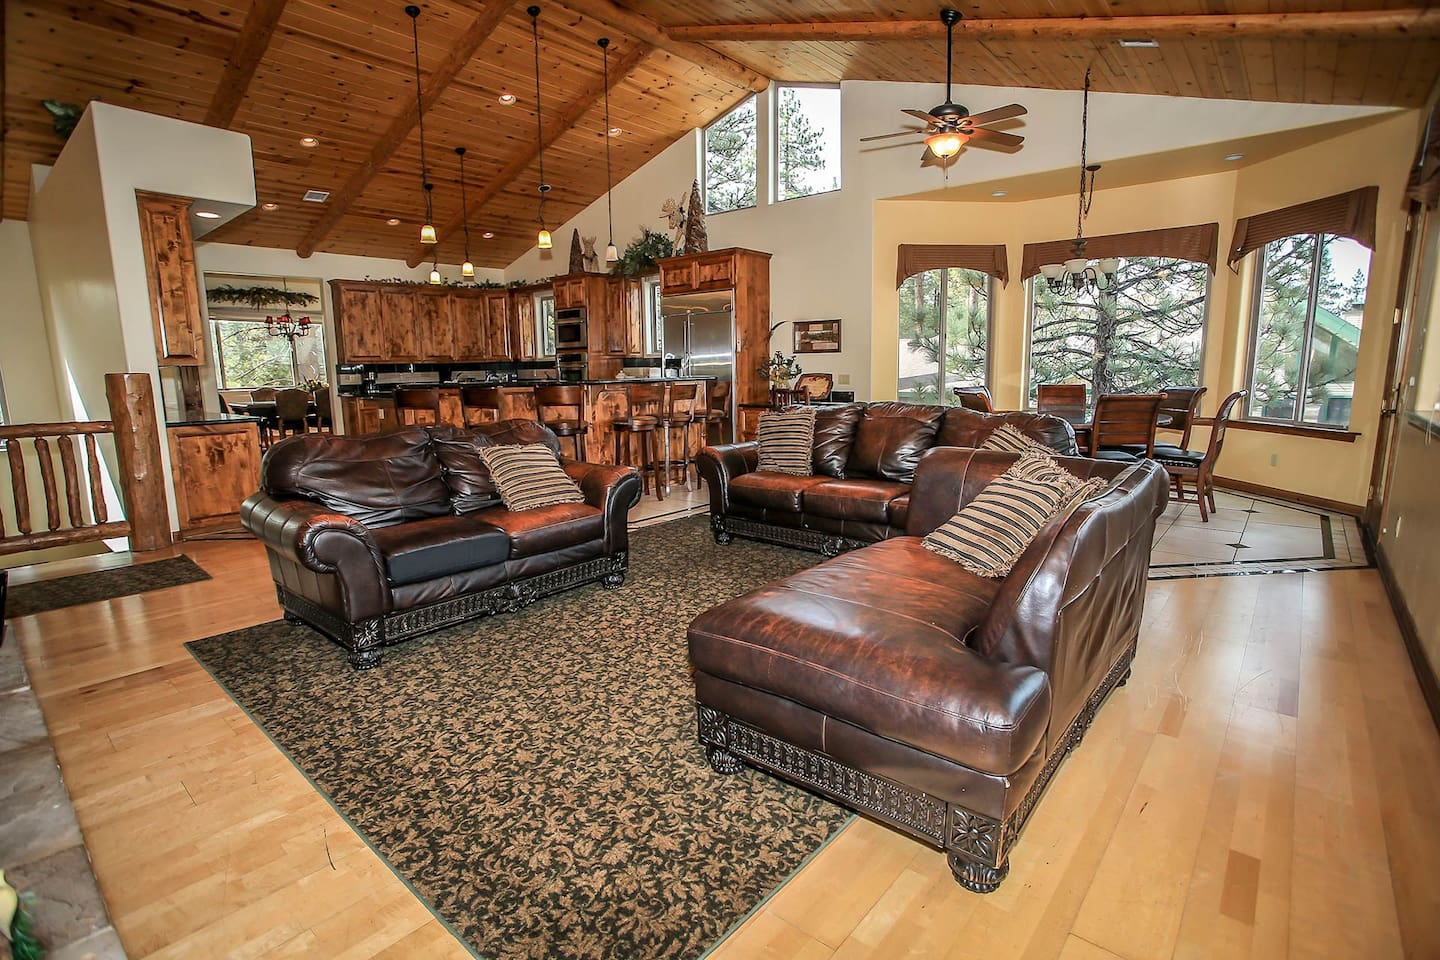 Log Home MasterpiecePool TableWet BarSpa Tub Houses For Rent In - Masterpiece pool table